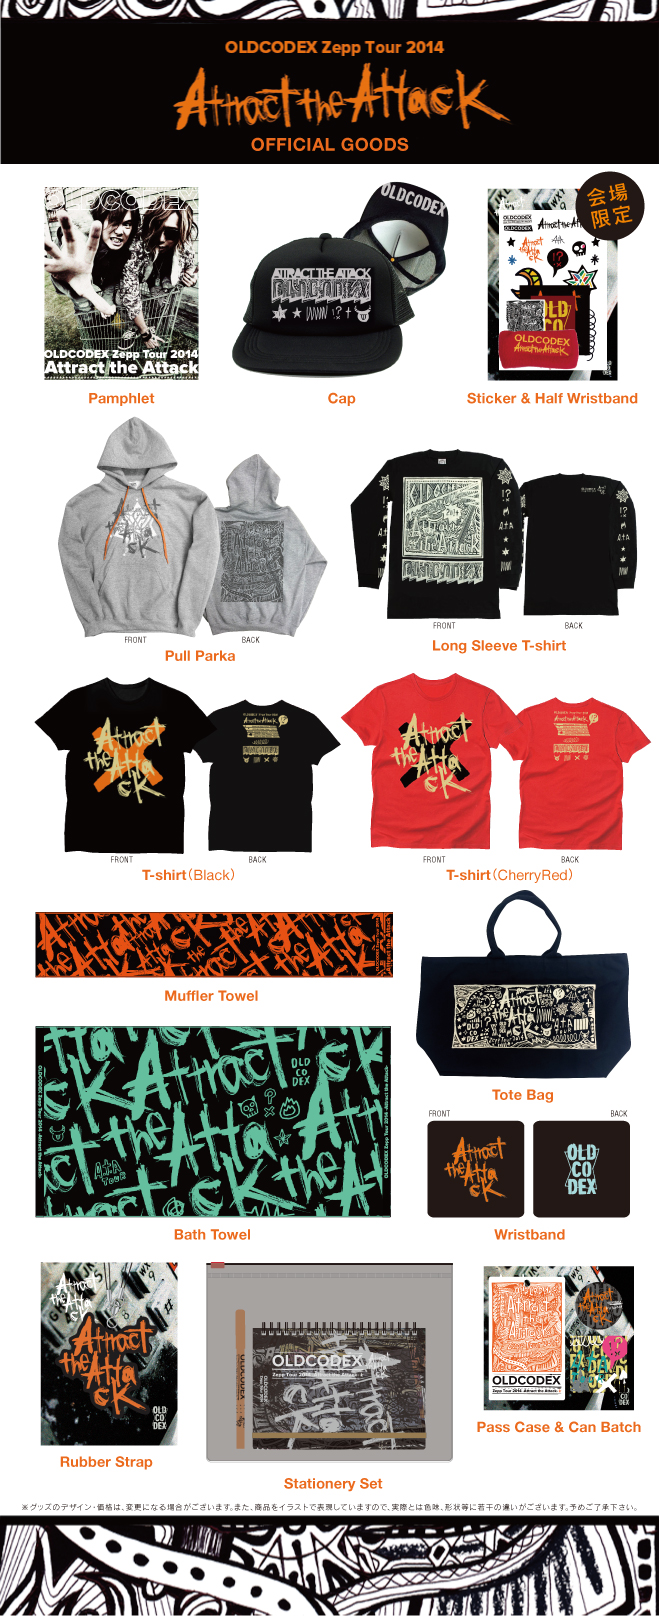 OLDCODEX Zepp Tour 2014 -Attract the Attack- OFFICIAL GOODS